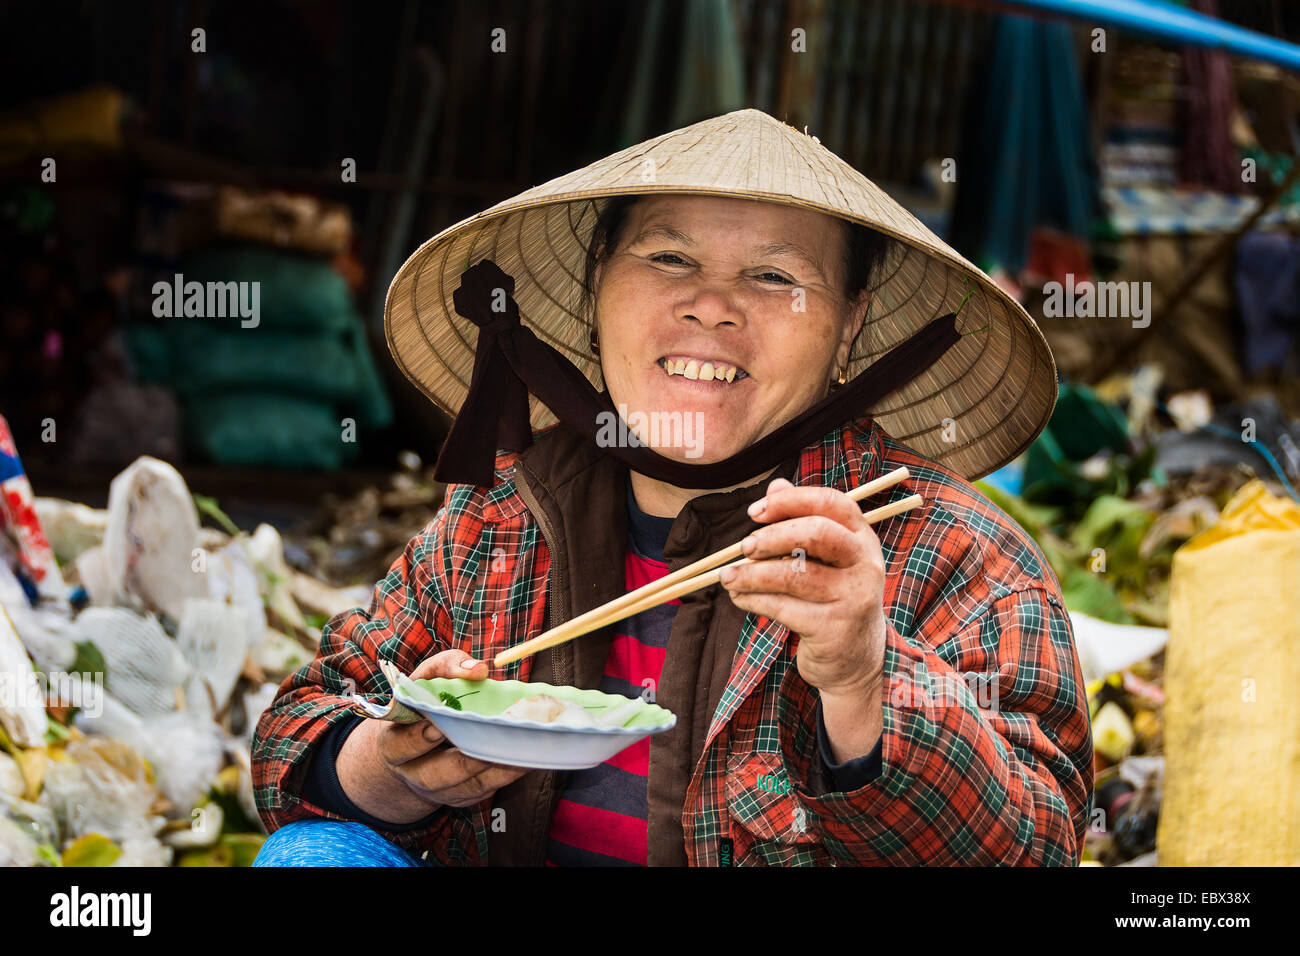 Vietnamese lady smiling at the camera eating her lunch. - Stock Image